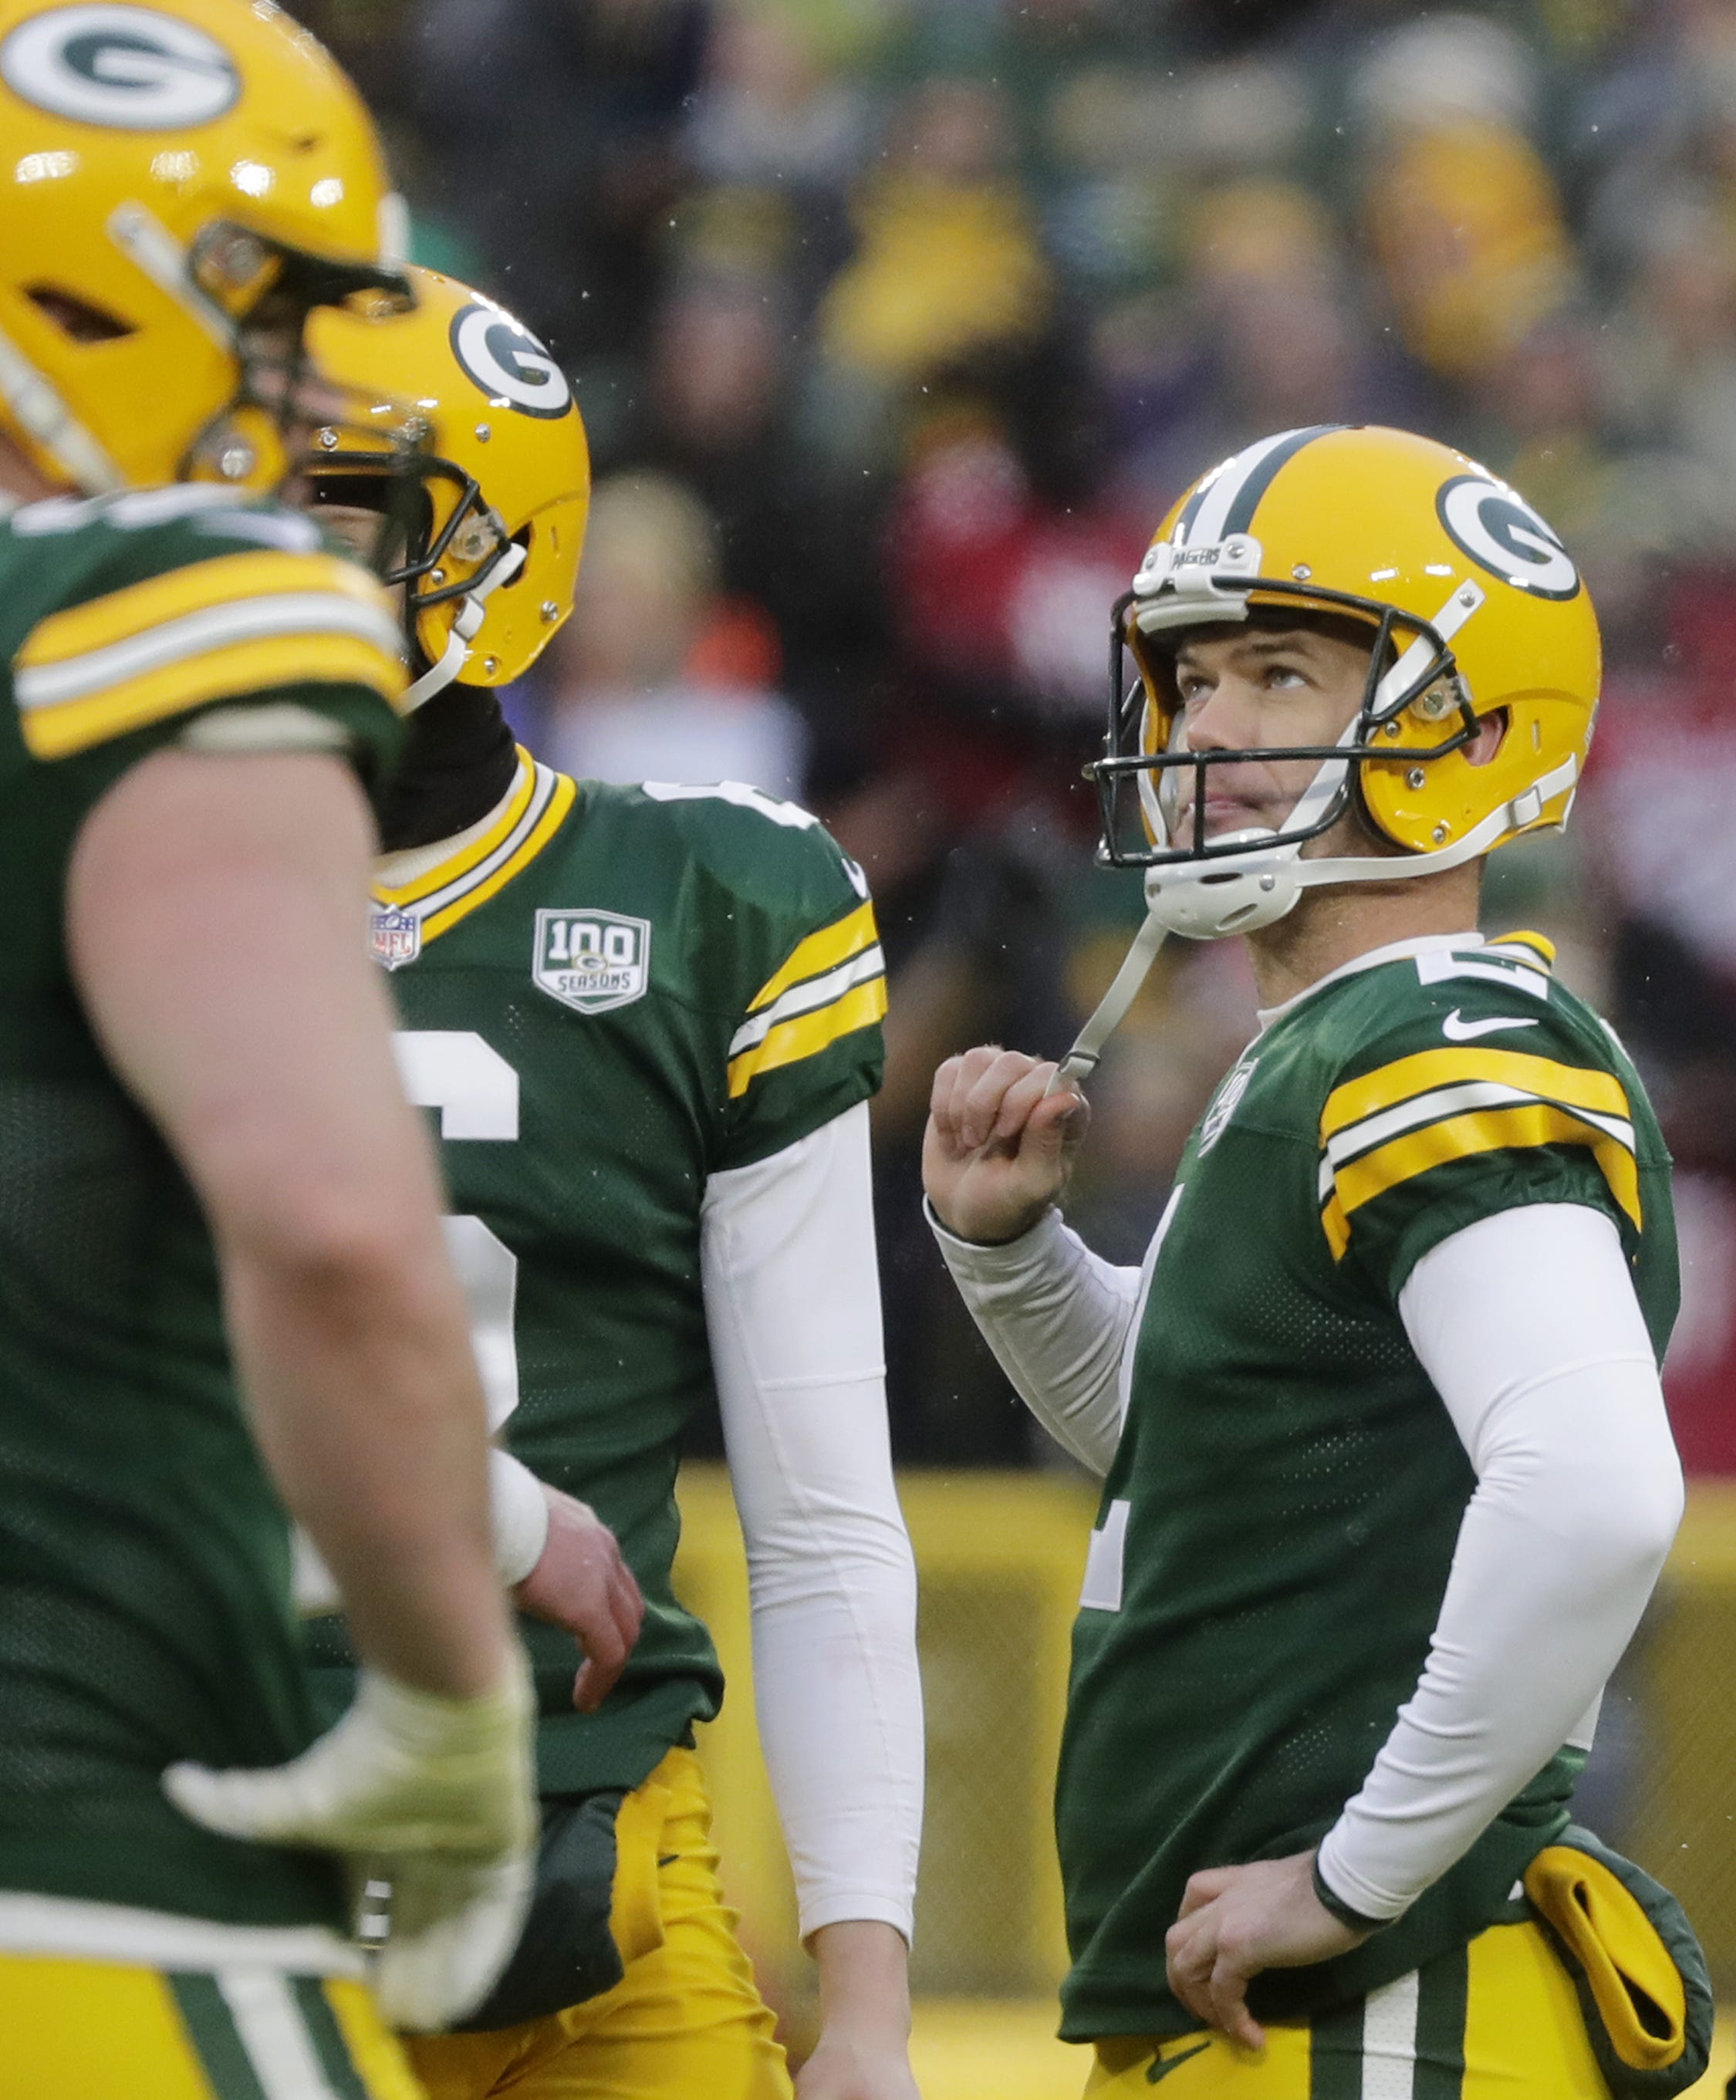 d4f08e357e45d http   www.packersnews.com picture-gallery sports nfl packers 2018 ...